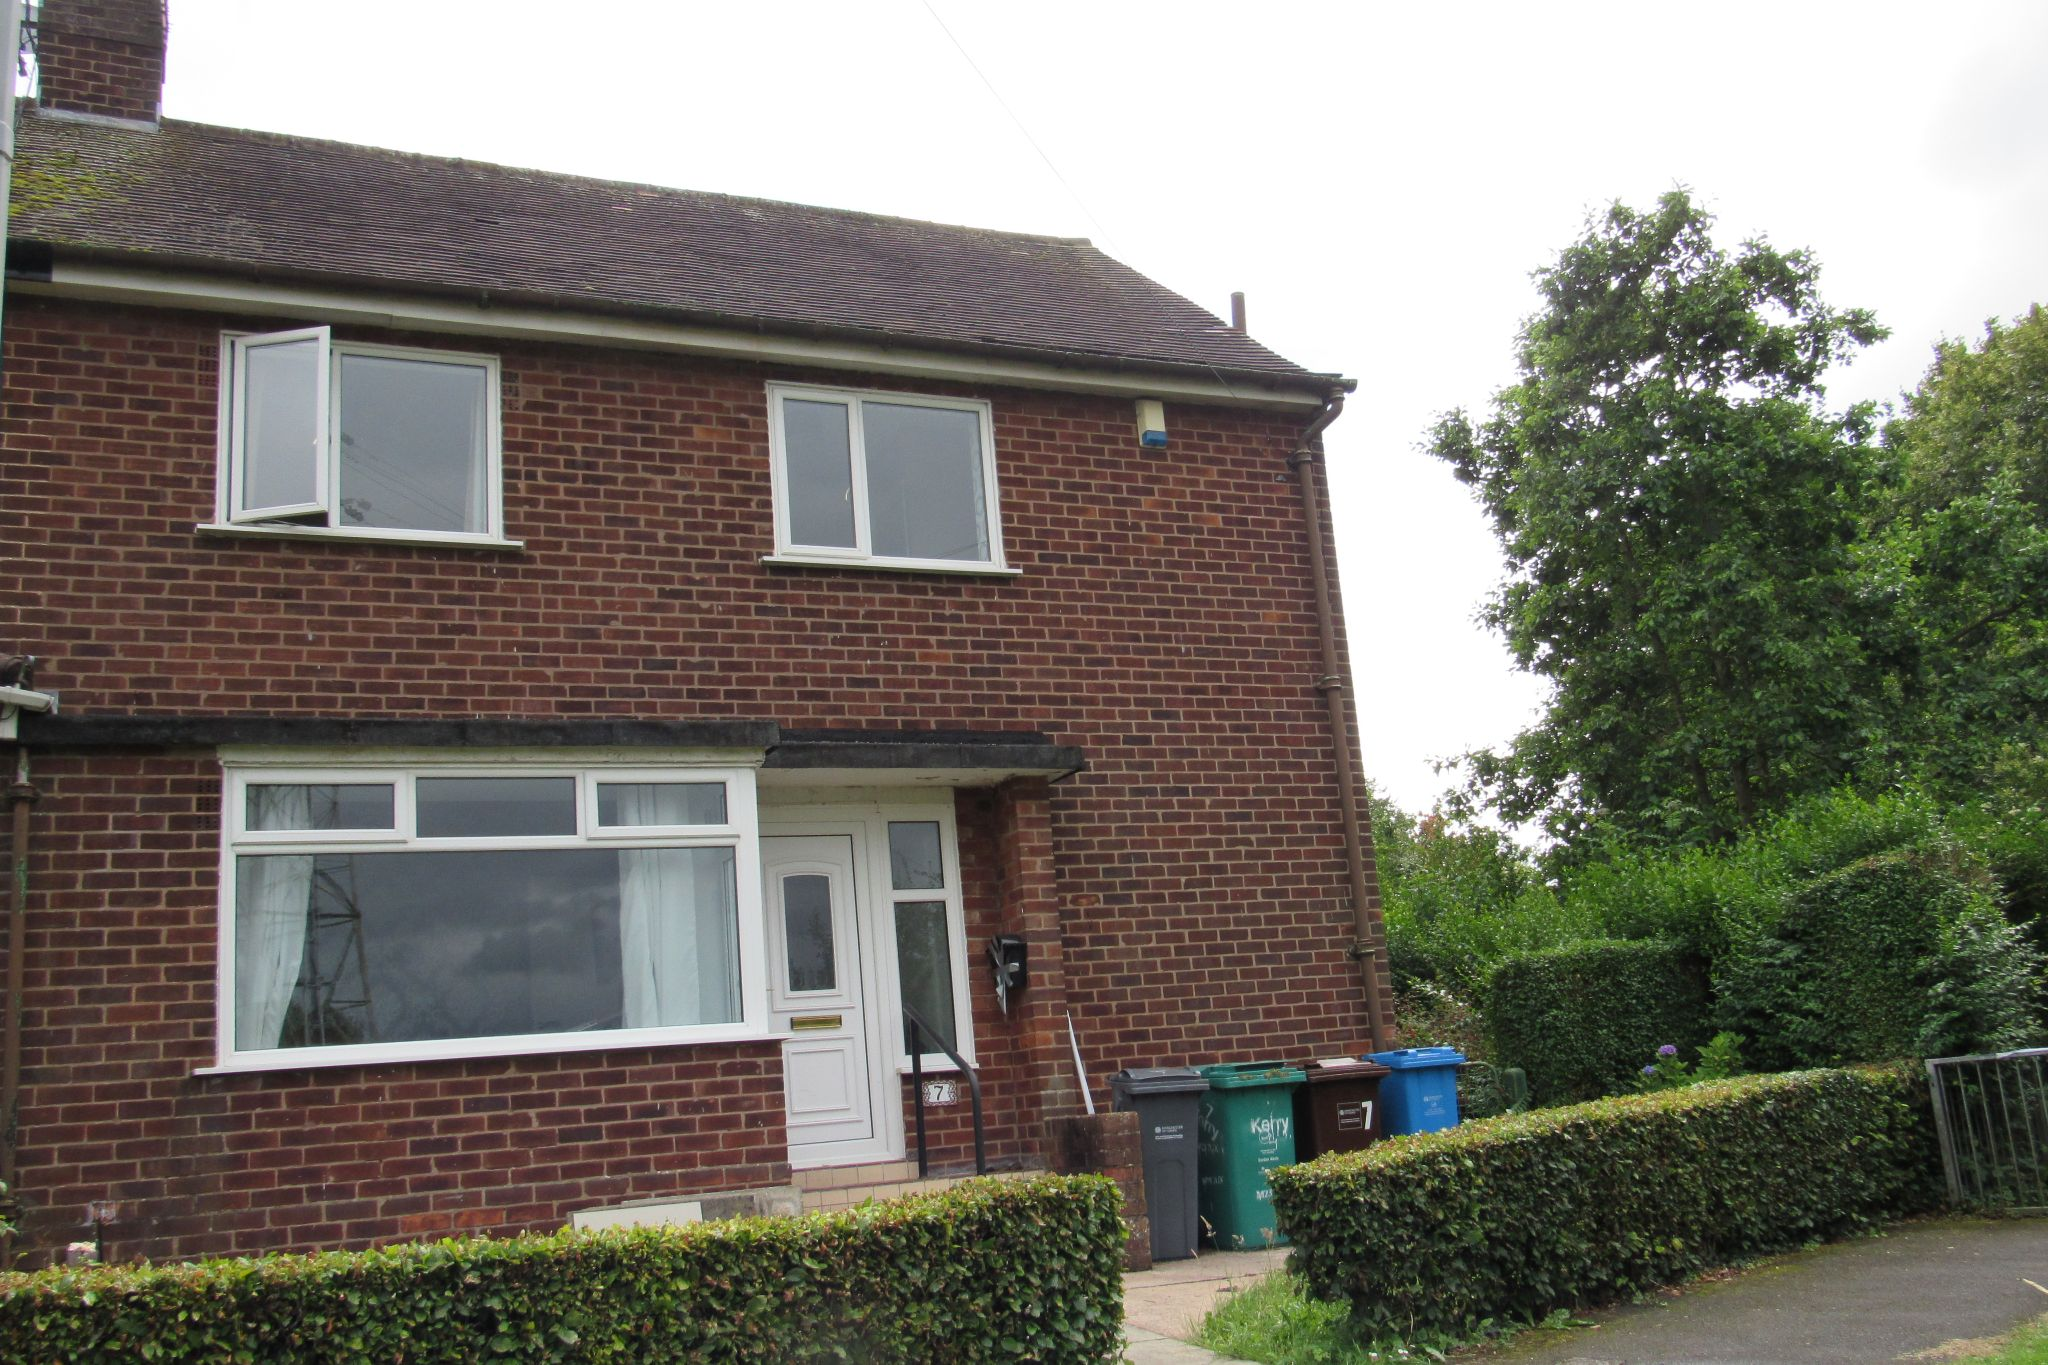 3 bedroom semi-detached house SSTC in Wythenshawe - Photograph 23.